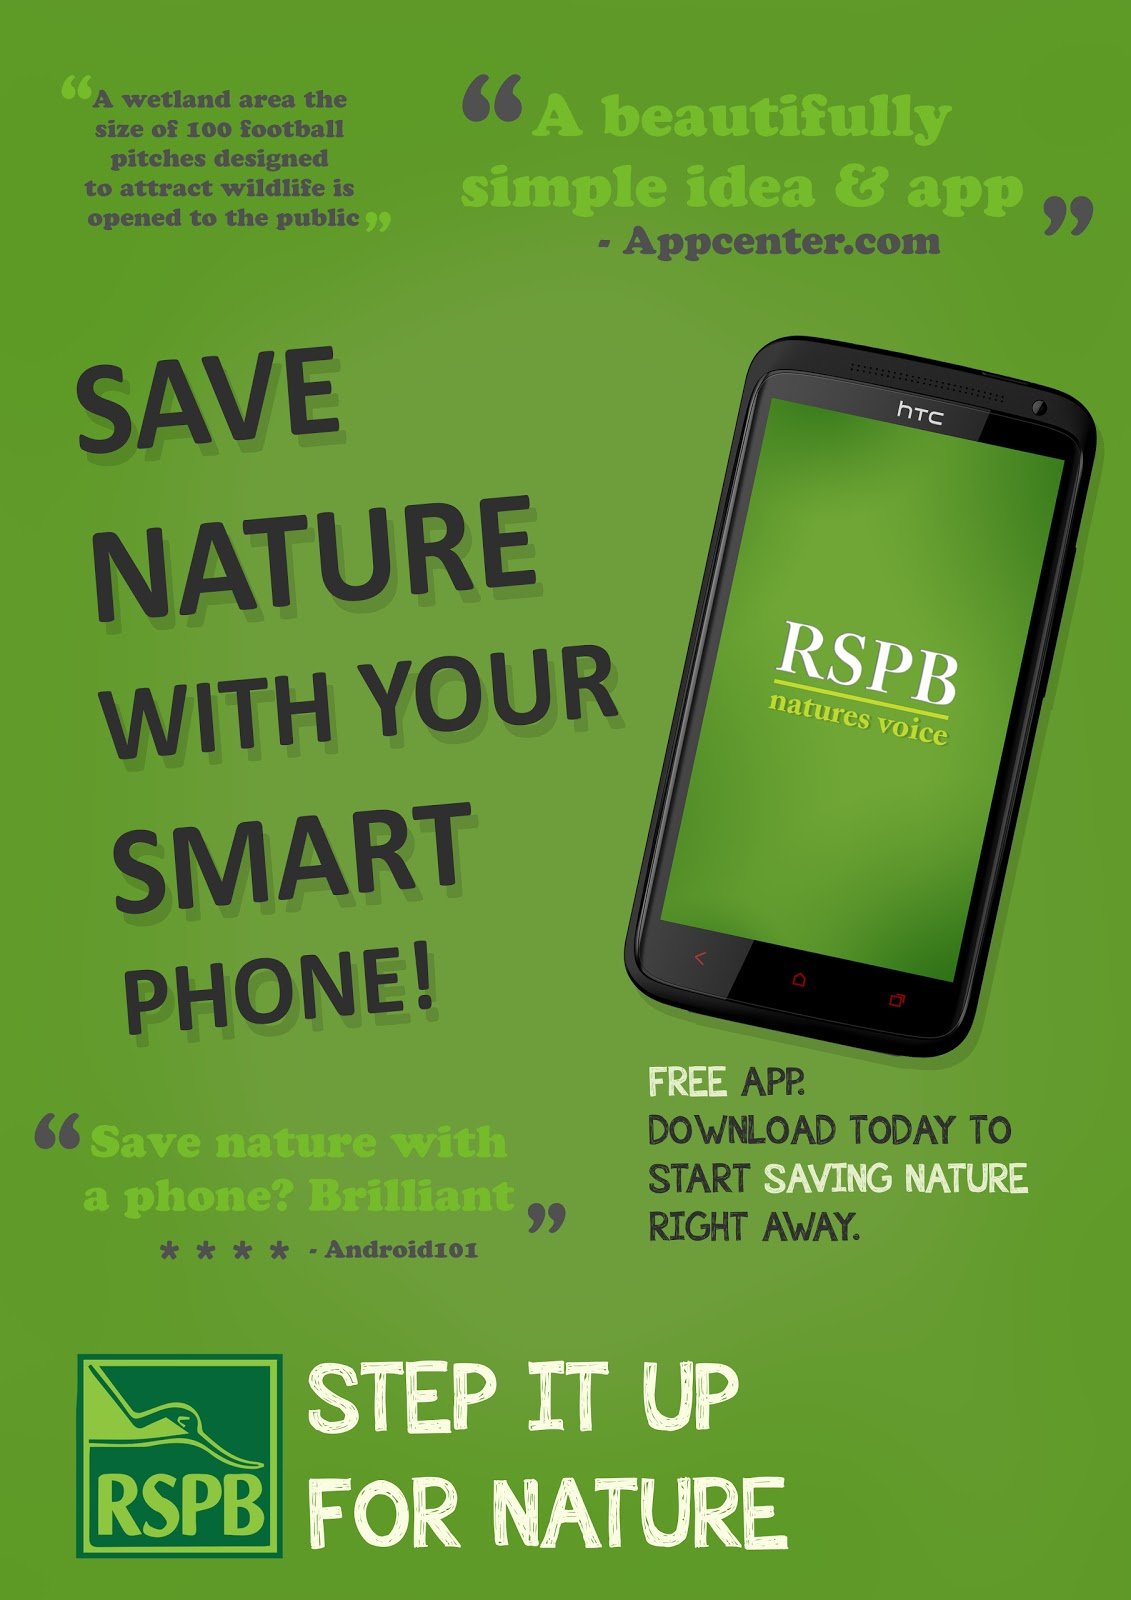 RSPB - Professional Practice - Rob Taylor Gibson: Advertisement Ideas.